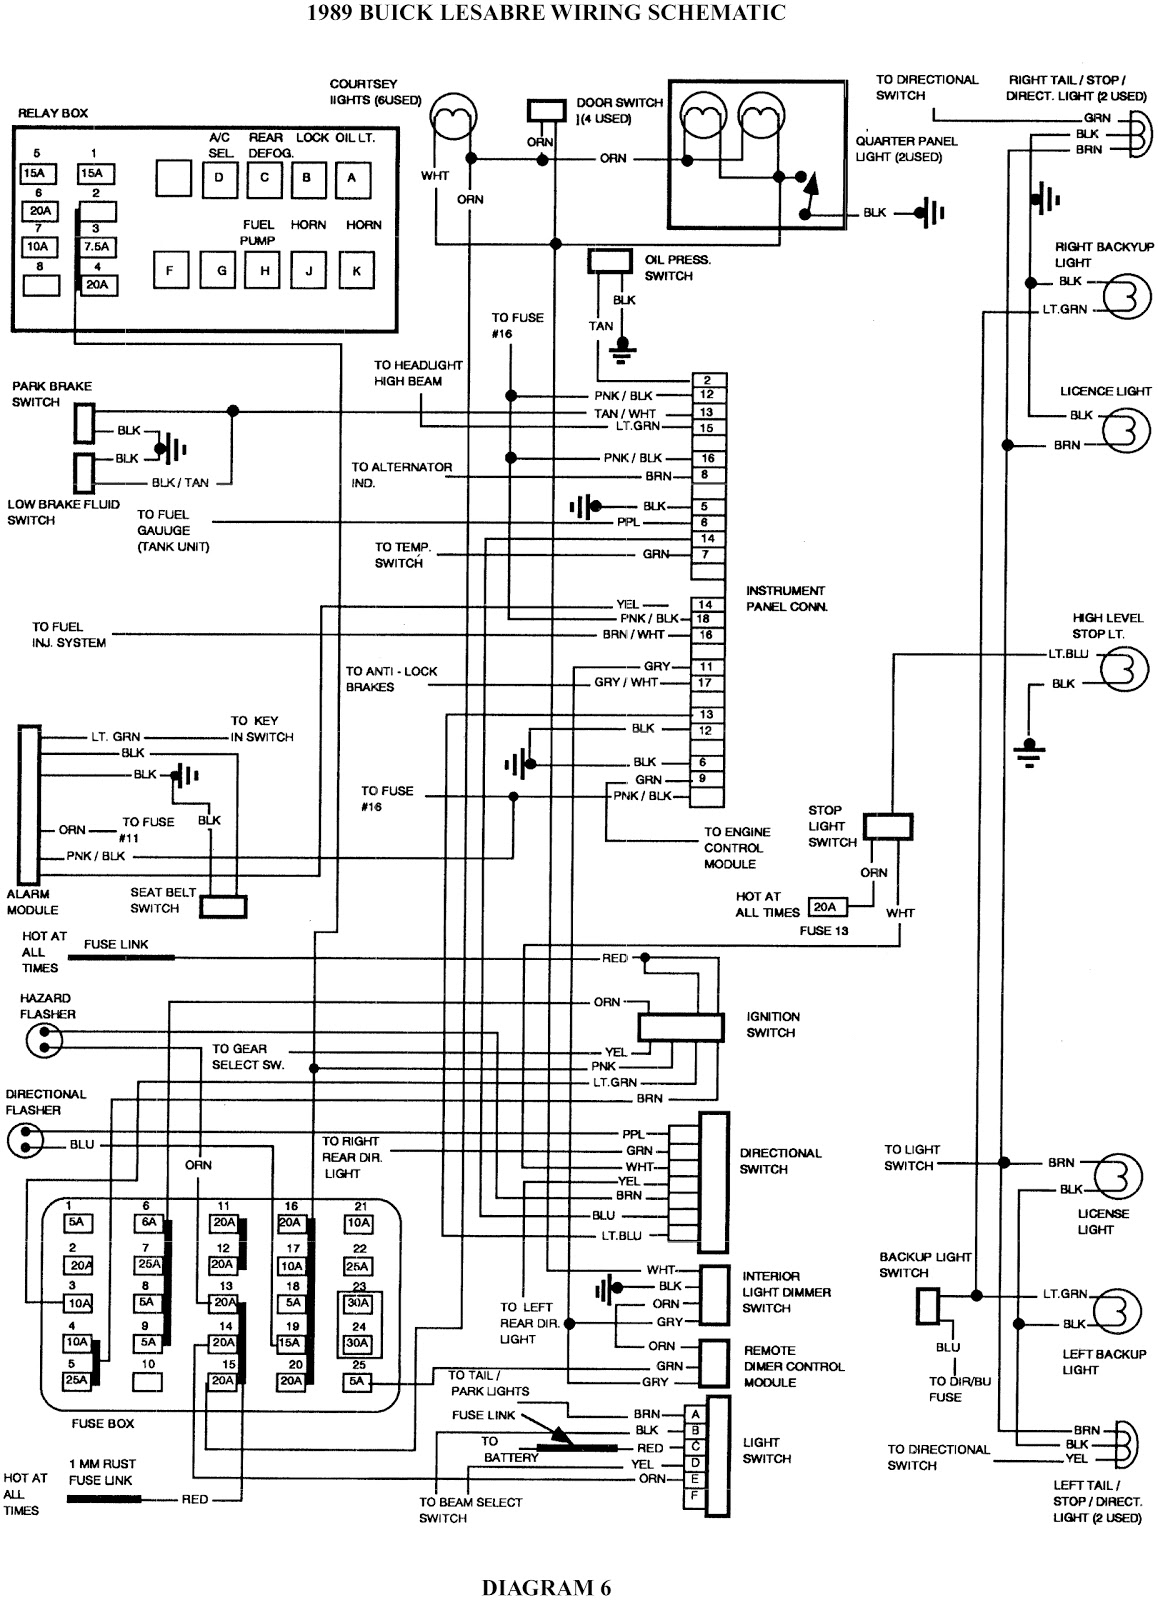 99 Buick Century Radio Wire Harness Diagram on saturn relay engine light